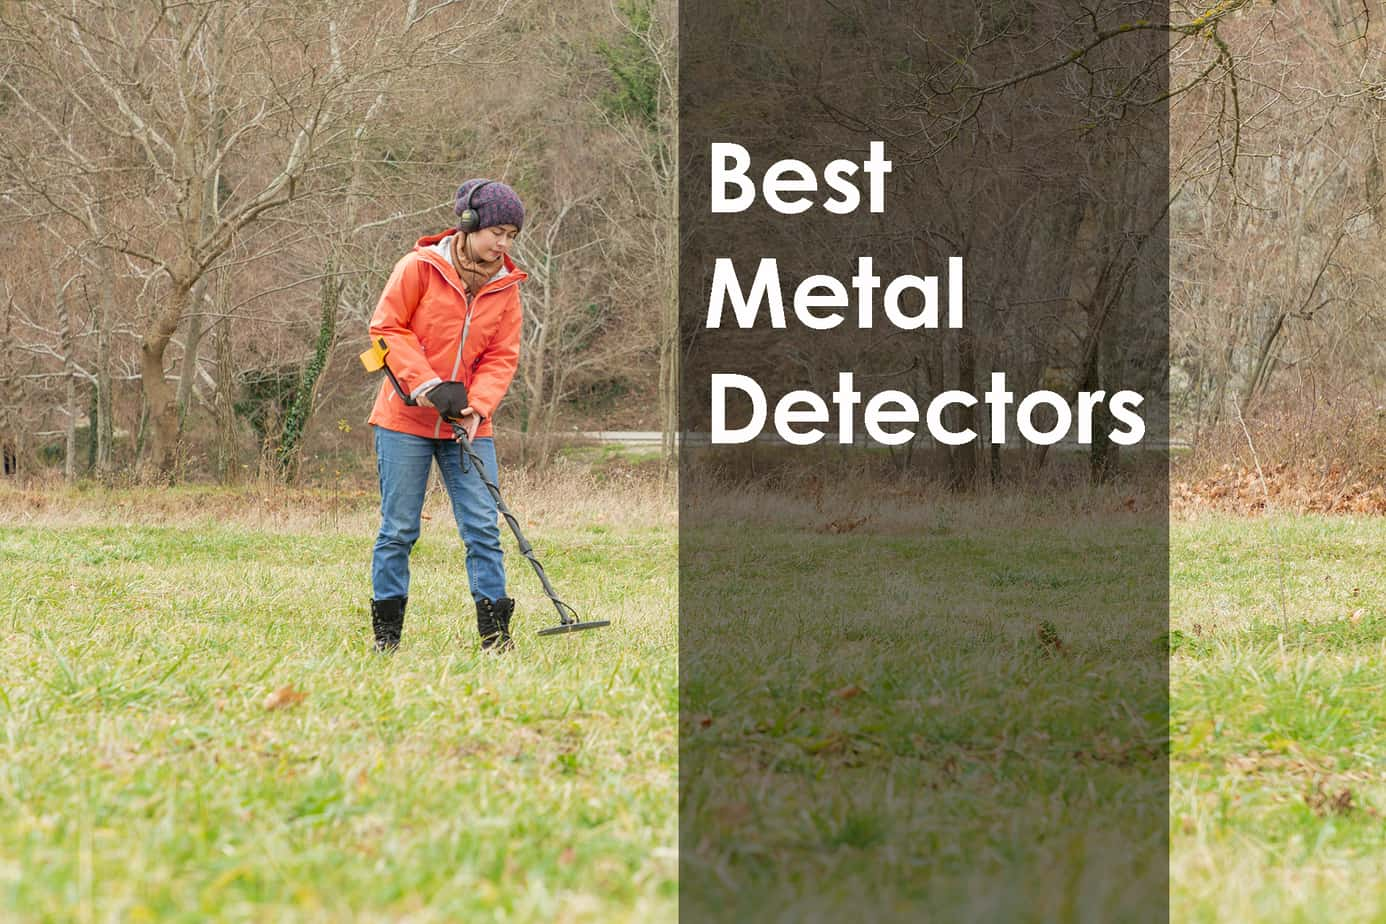 woman metal detecting in a field